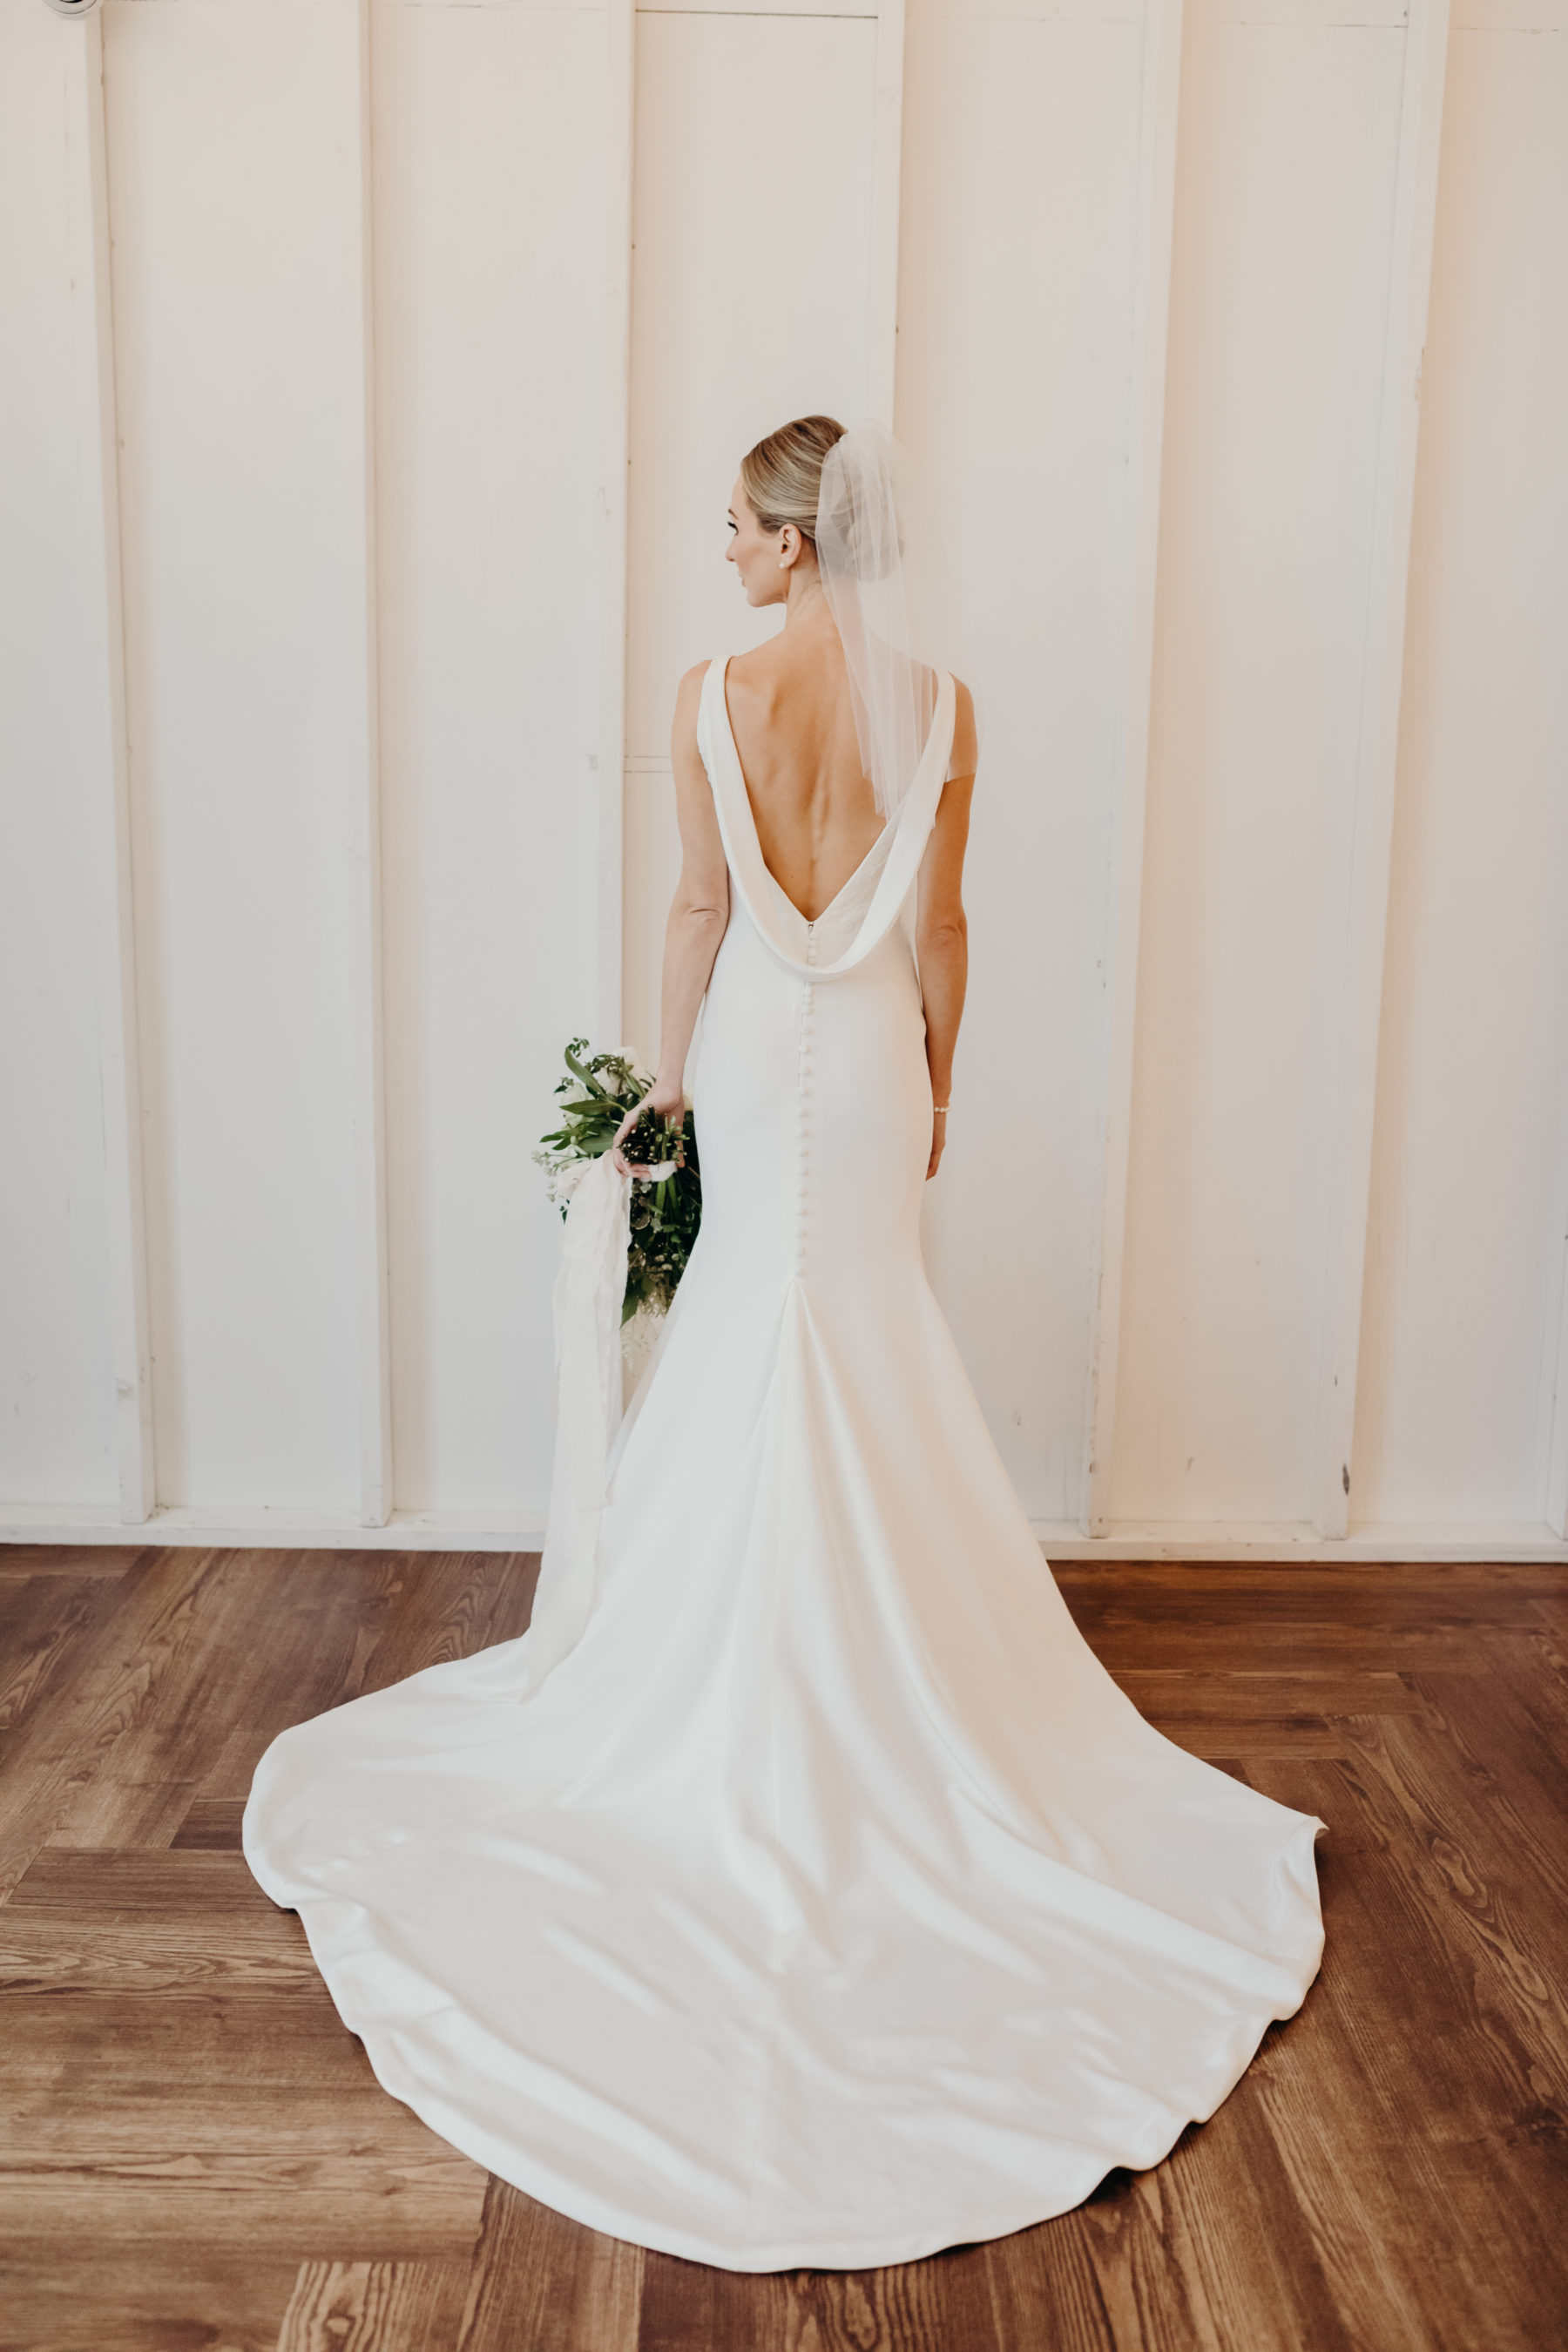 Olia Zavozina Wedding Dress: Lauren & Chris Lane's 14 TENN wedding featured on Nashville Bride Guide